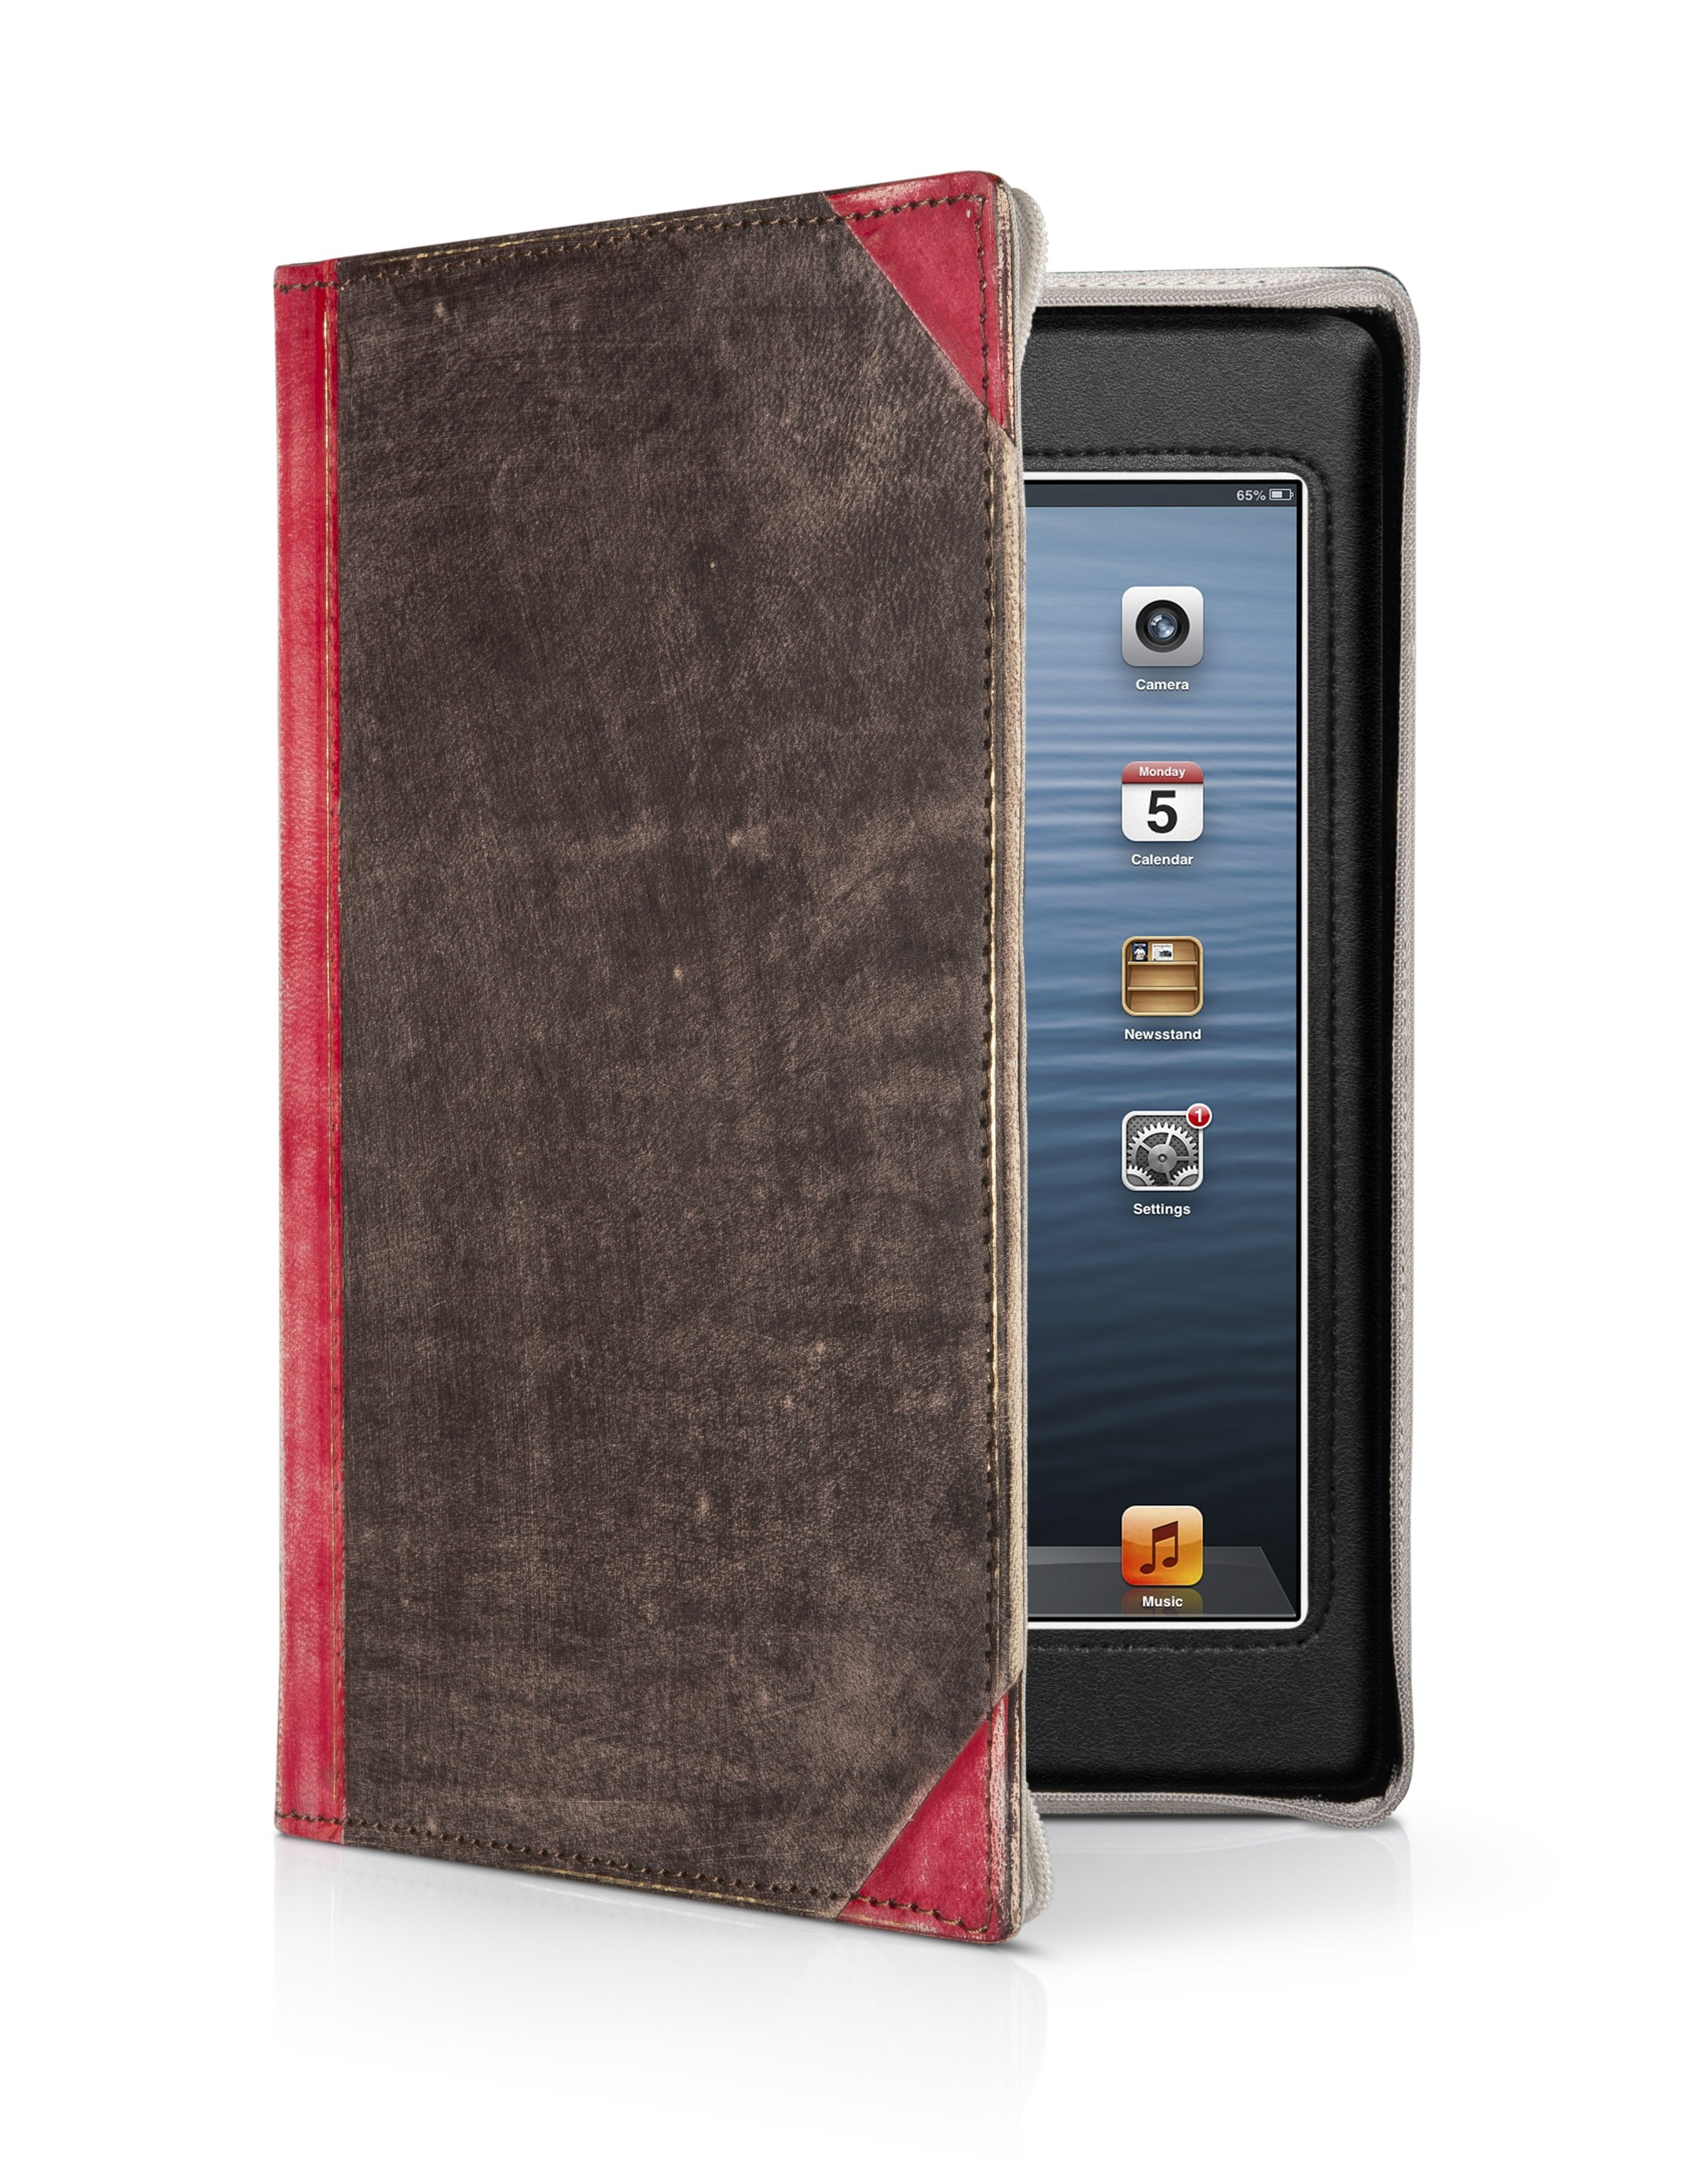 Amazon.com: Twelve South BookBook for iPad mini, red | Vintage leather ...